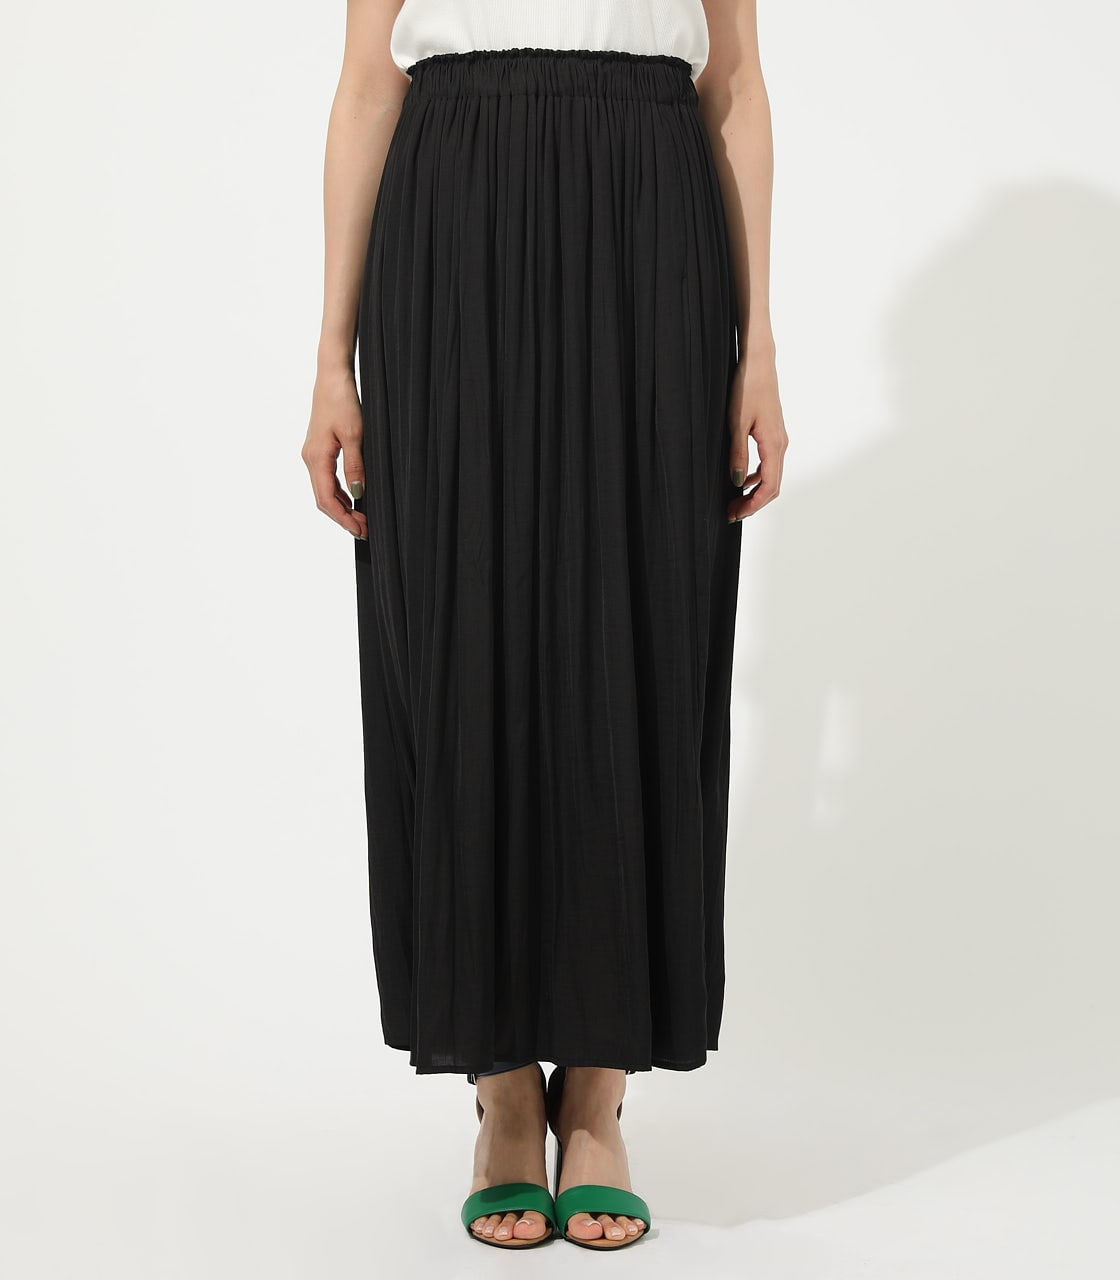 【AZUL BY MOUSSY】GATHER FLARE SKIRT 詳細画像 BLK 4